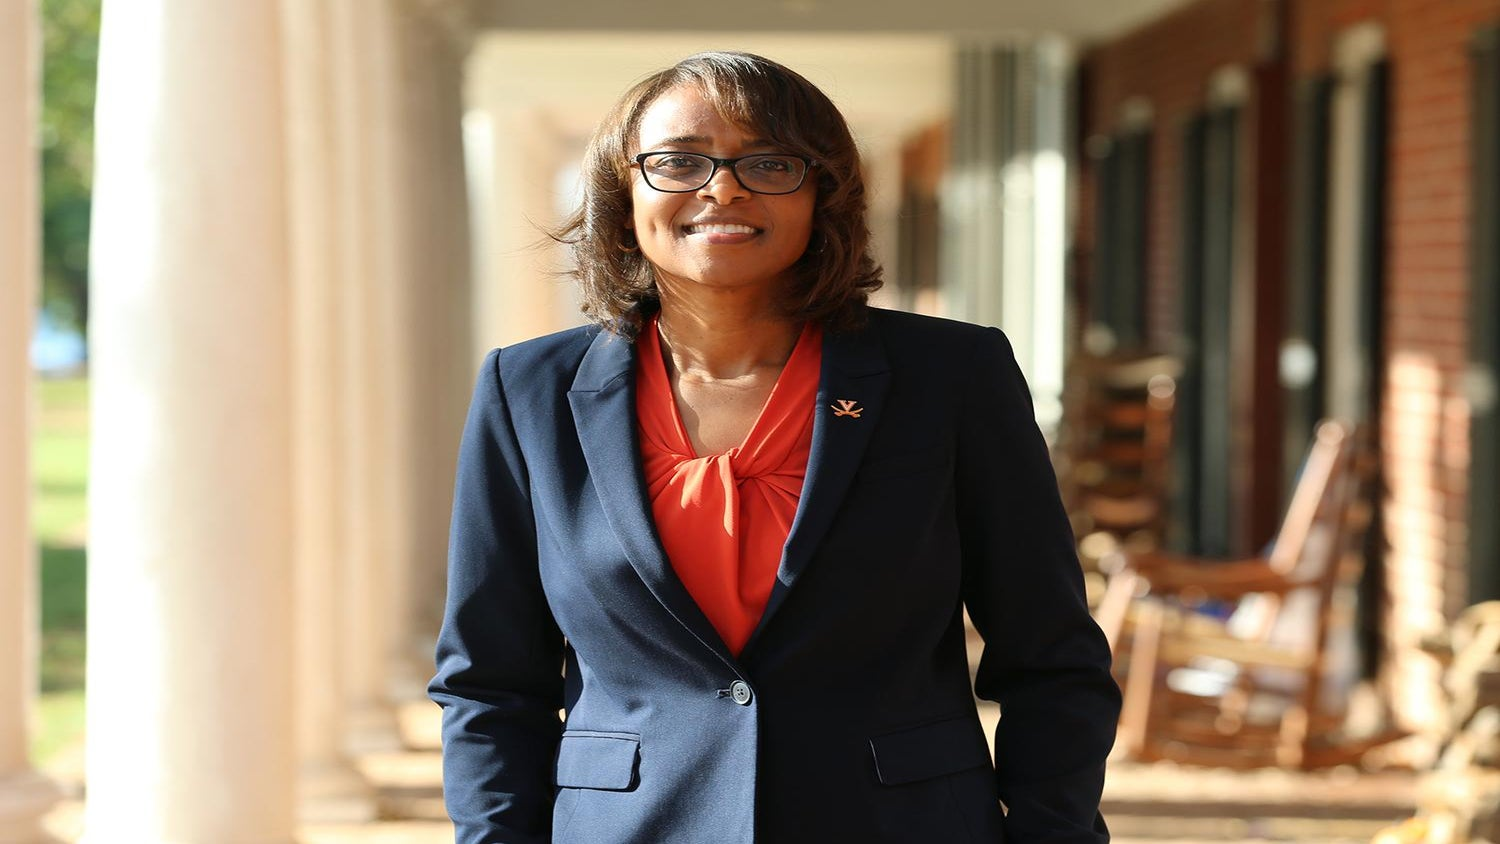 Carla Williams Becomes First Black Woman To Lead Athletics Program At A Power Five School